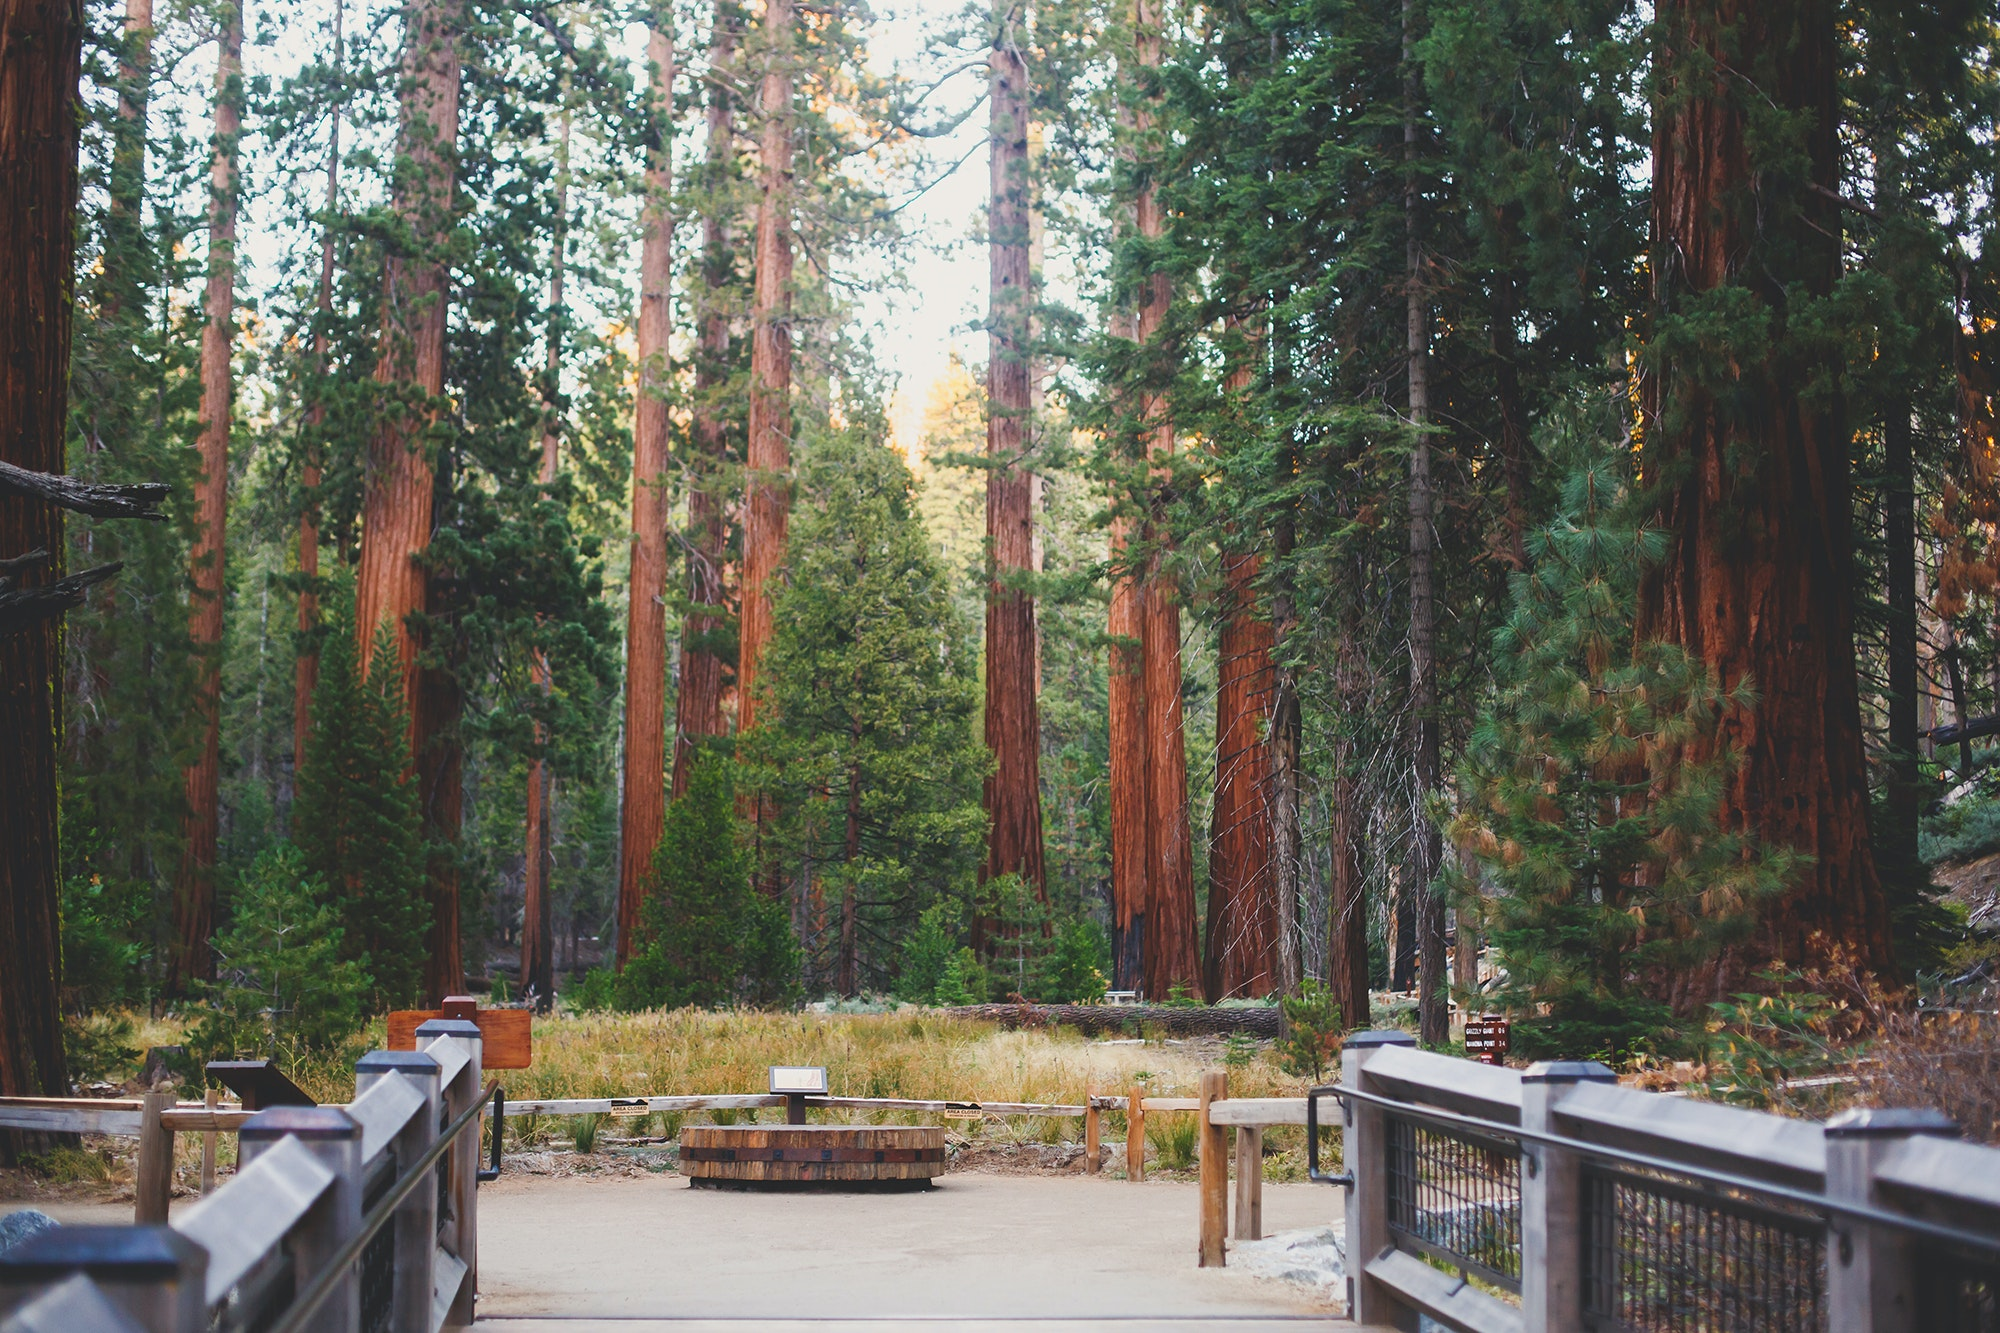 Popular areas like Yosemite's Mariposa Grove are likely to be closed to limit potential distruction to the area.